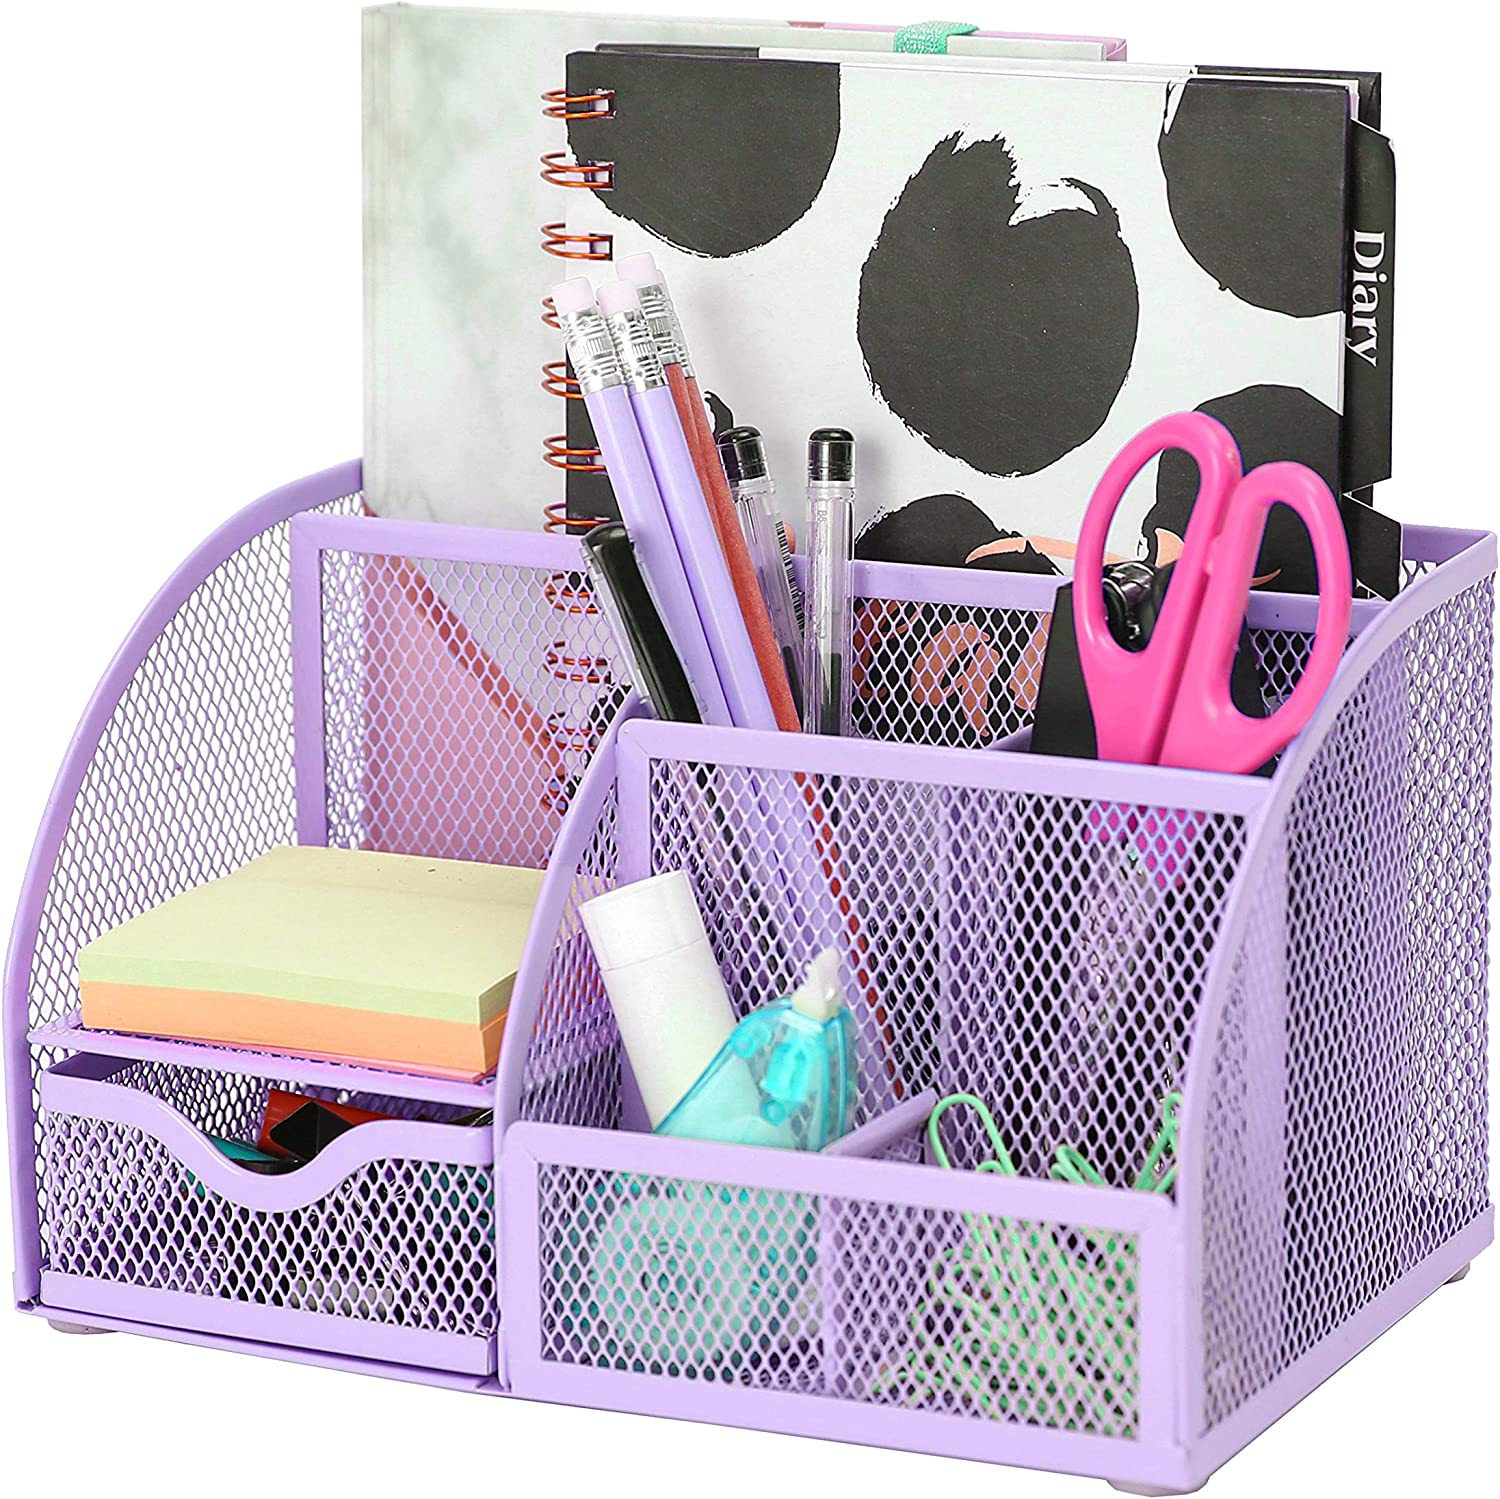 Exerz Mesh Desk Organizer Office with 7 Compartments + Drawer/Desk Tidy Candy/Pen Holder/Multifunctional Organizer (348-Light Purple)